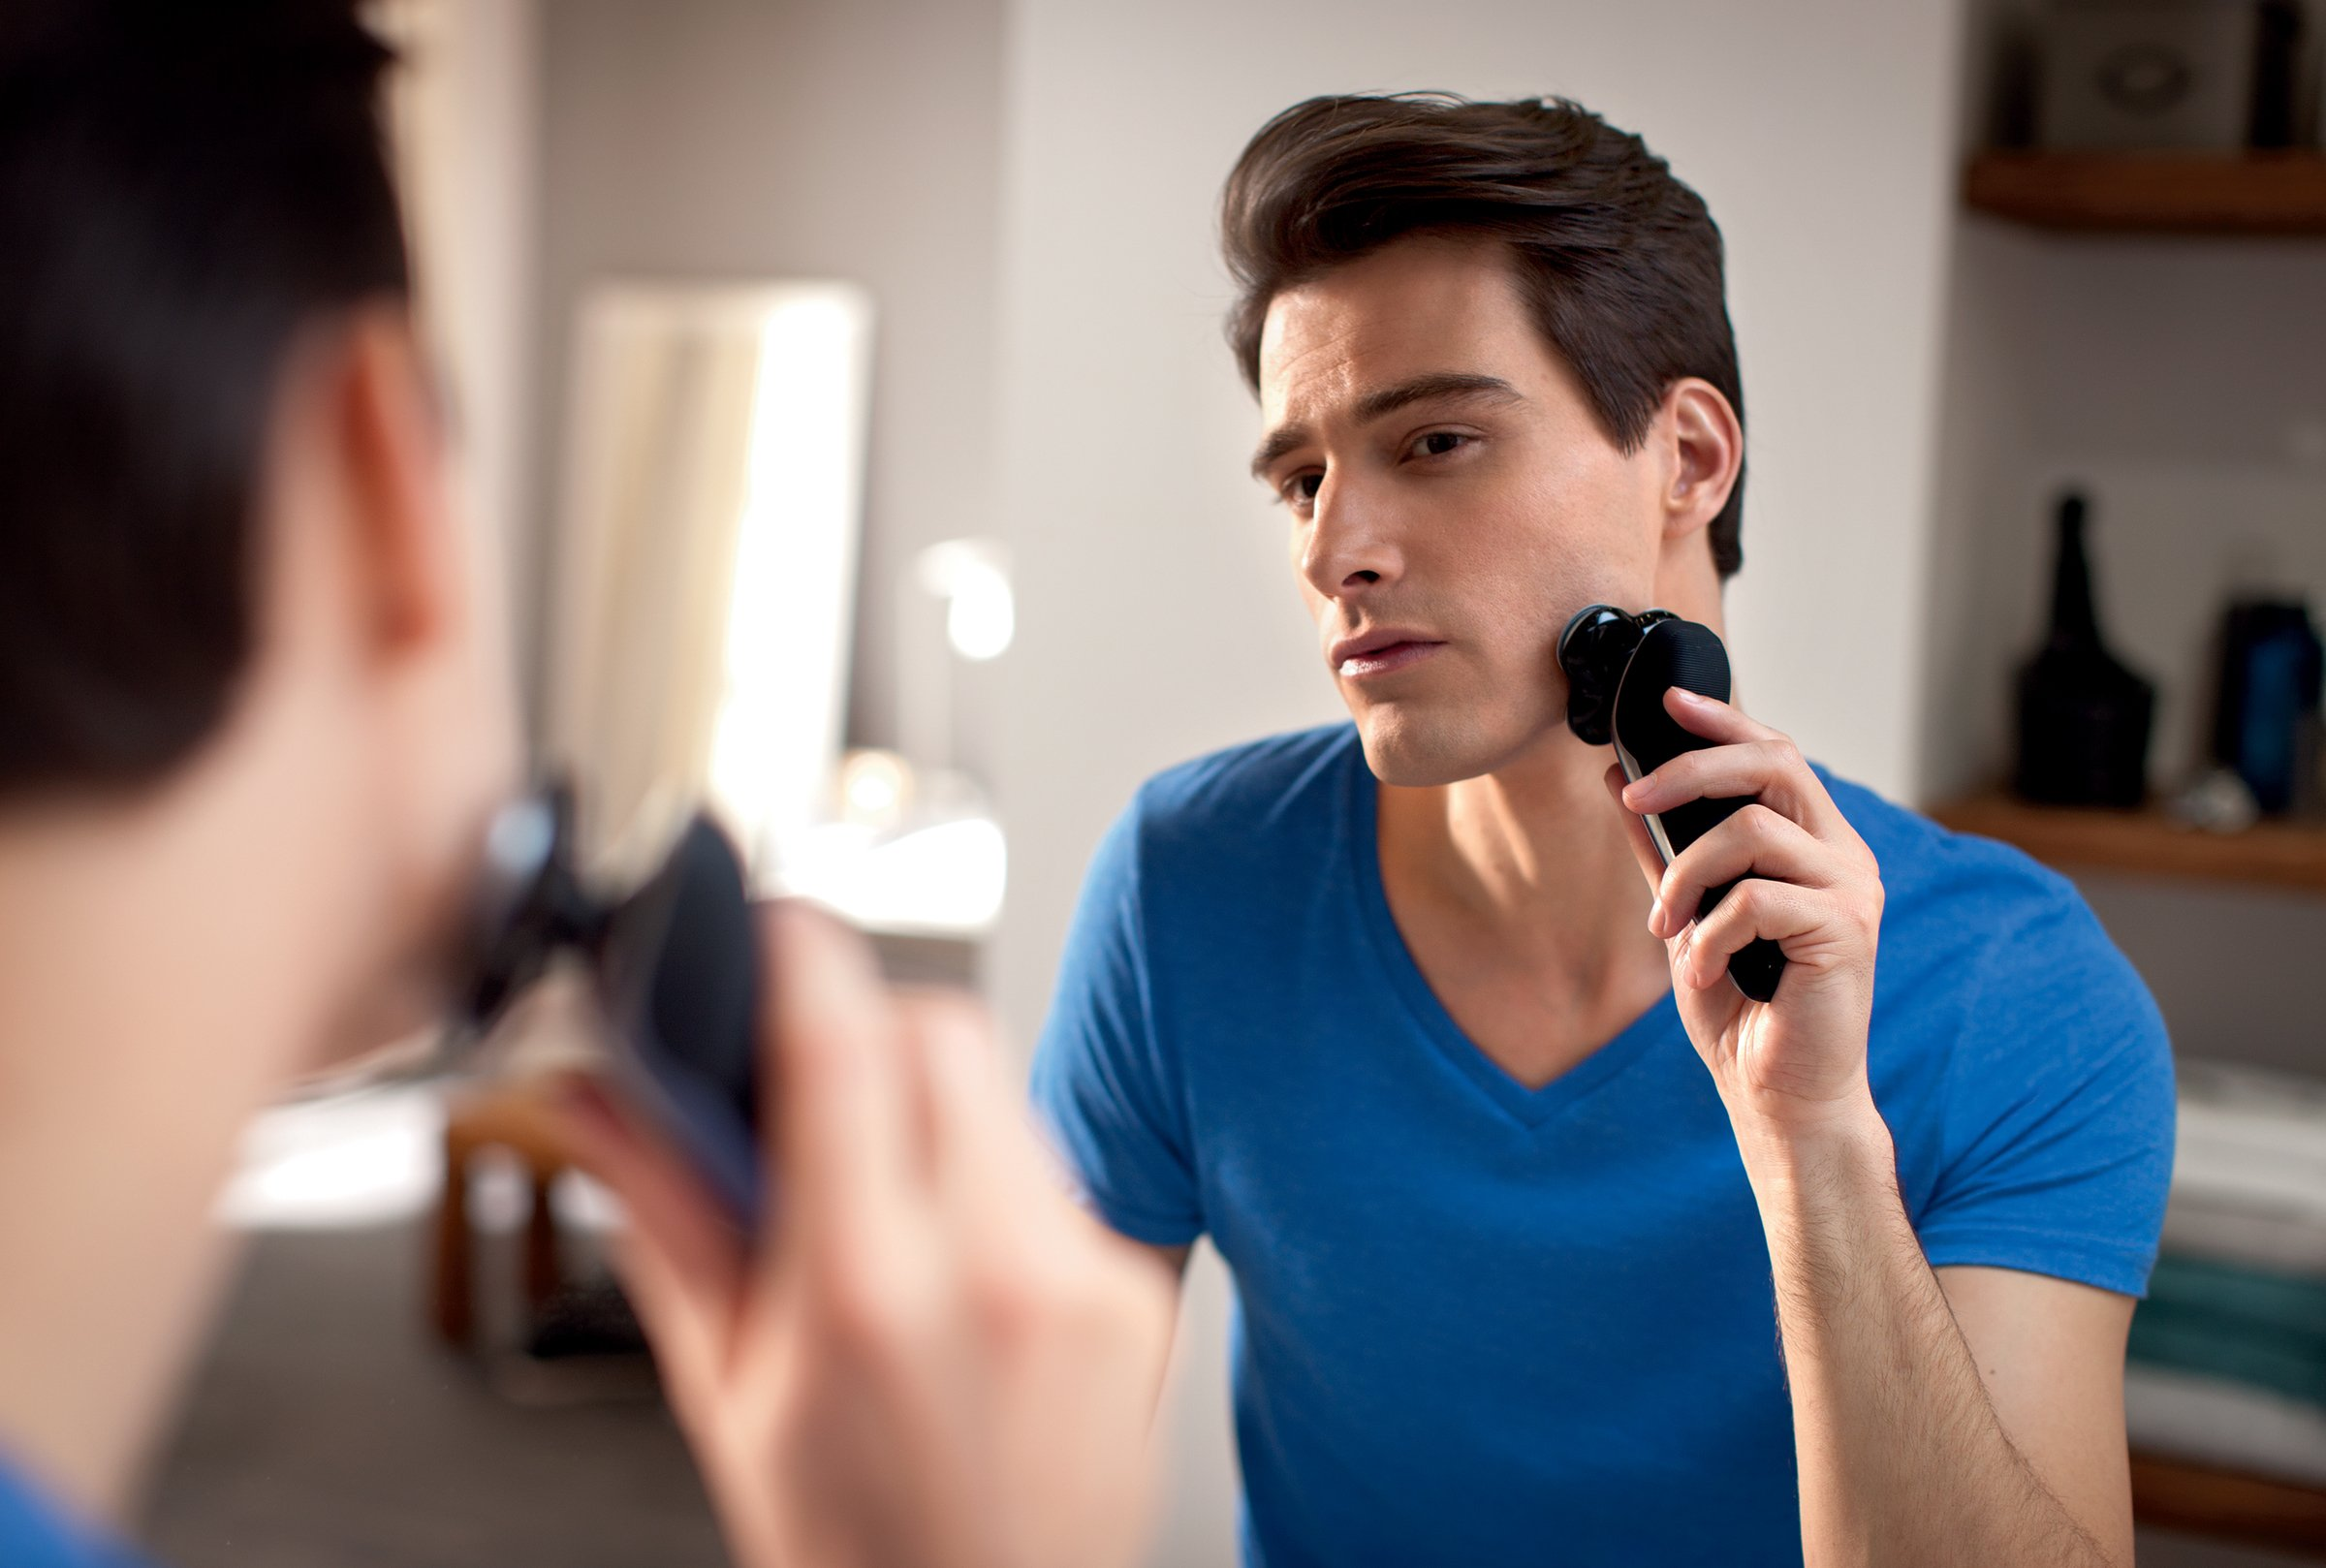 Philips Norelco Electric Shaver 8900 with SmartClean, Wet & Dry Edition S8950/90 by Philips Norelco (Image #9)